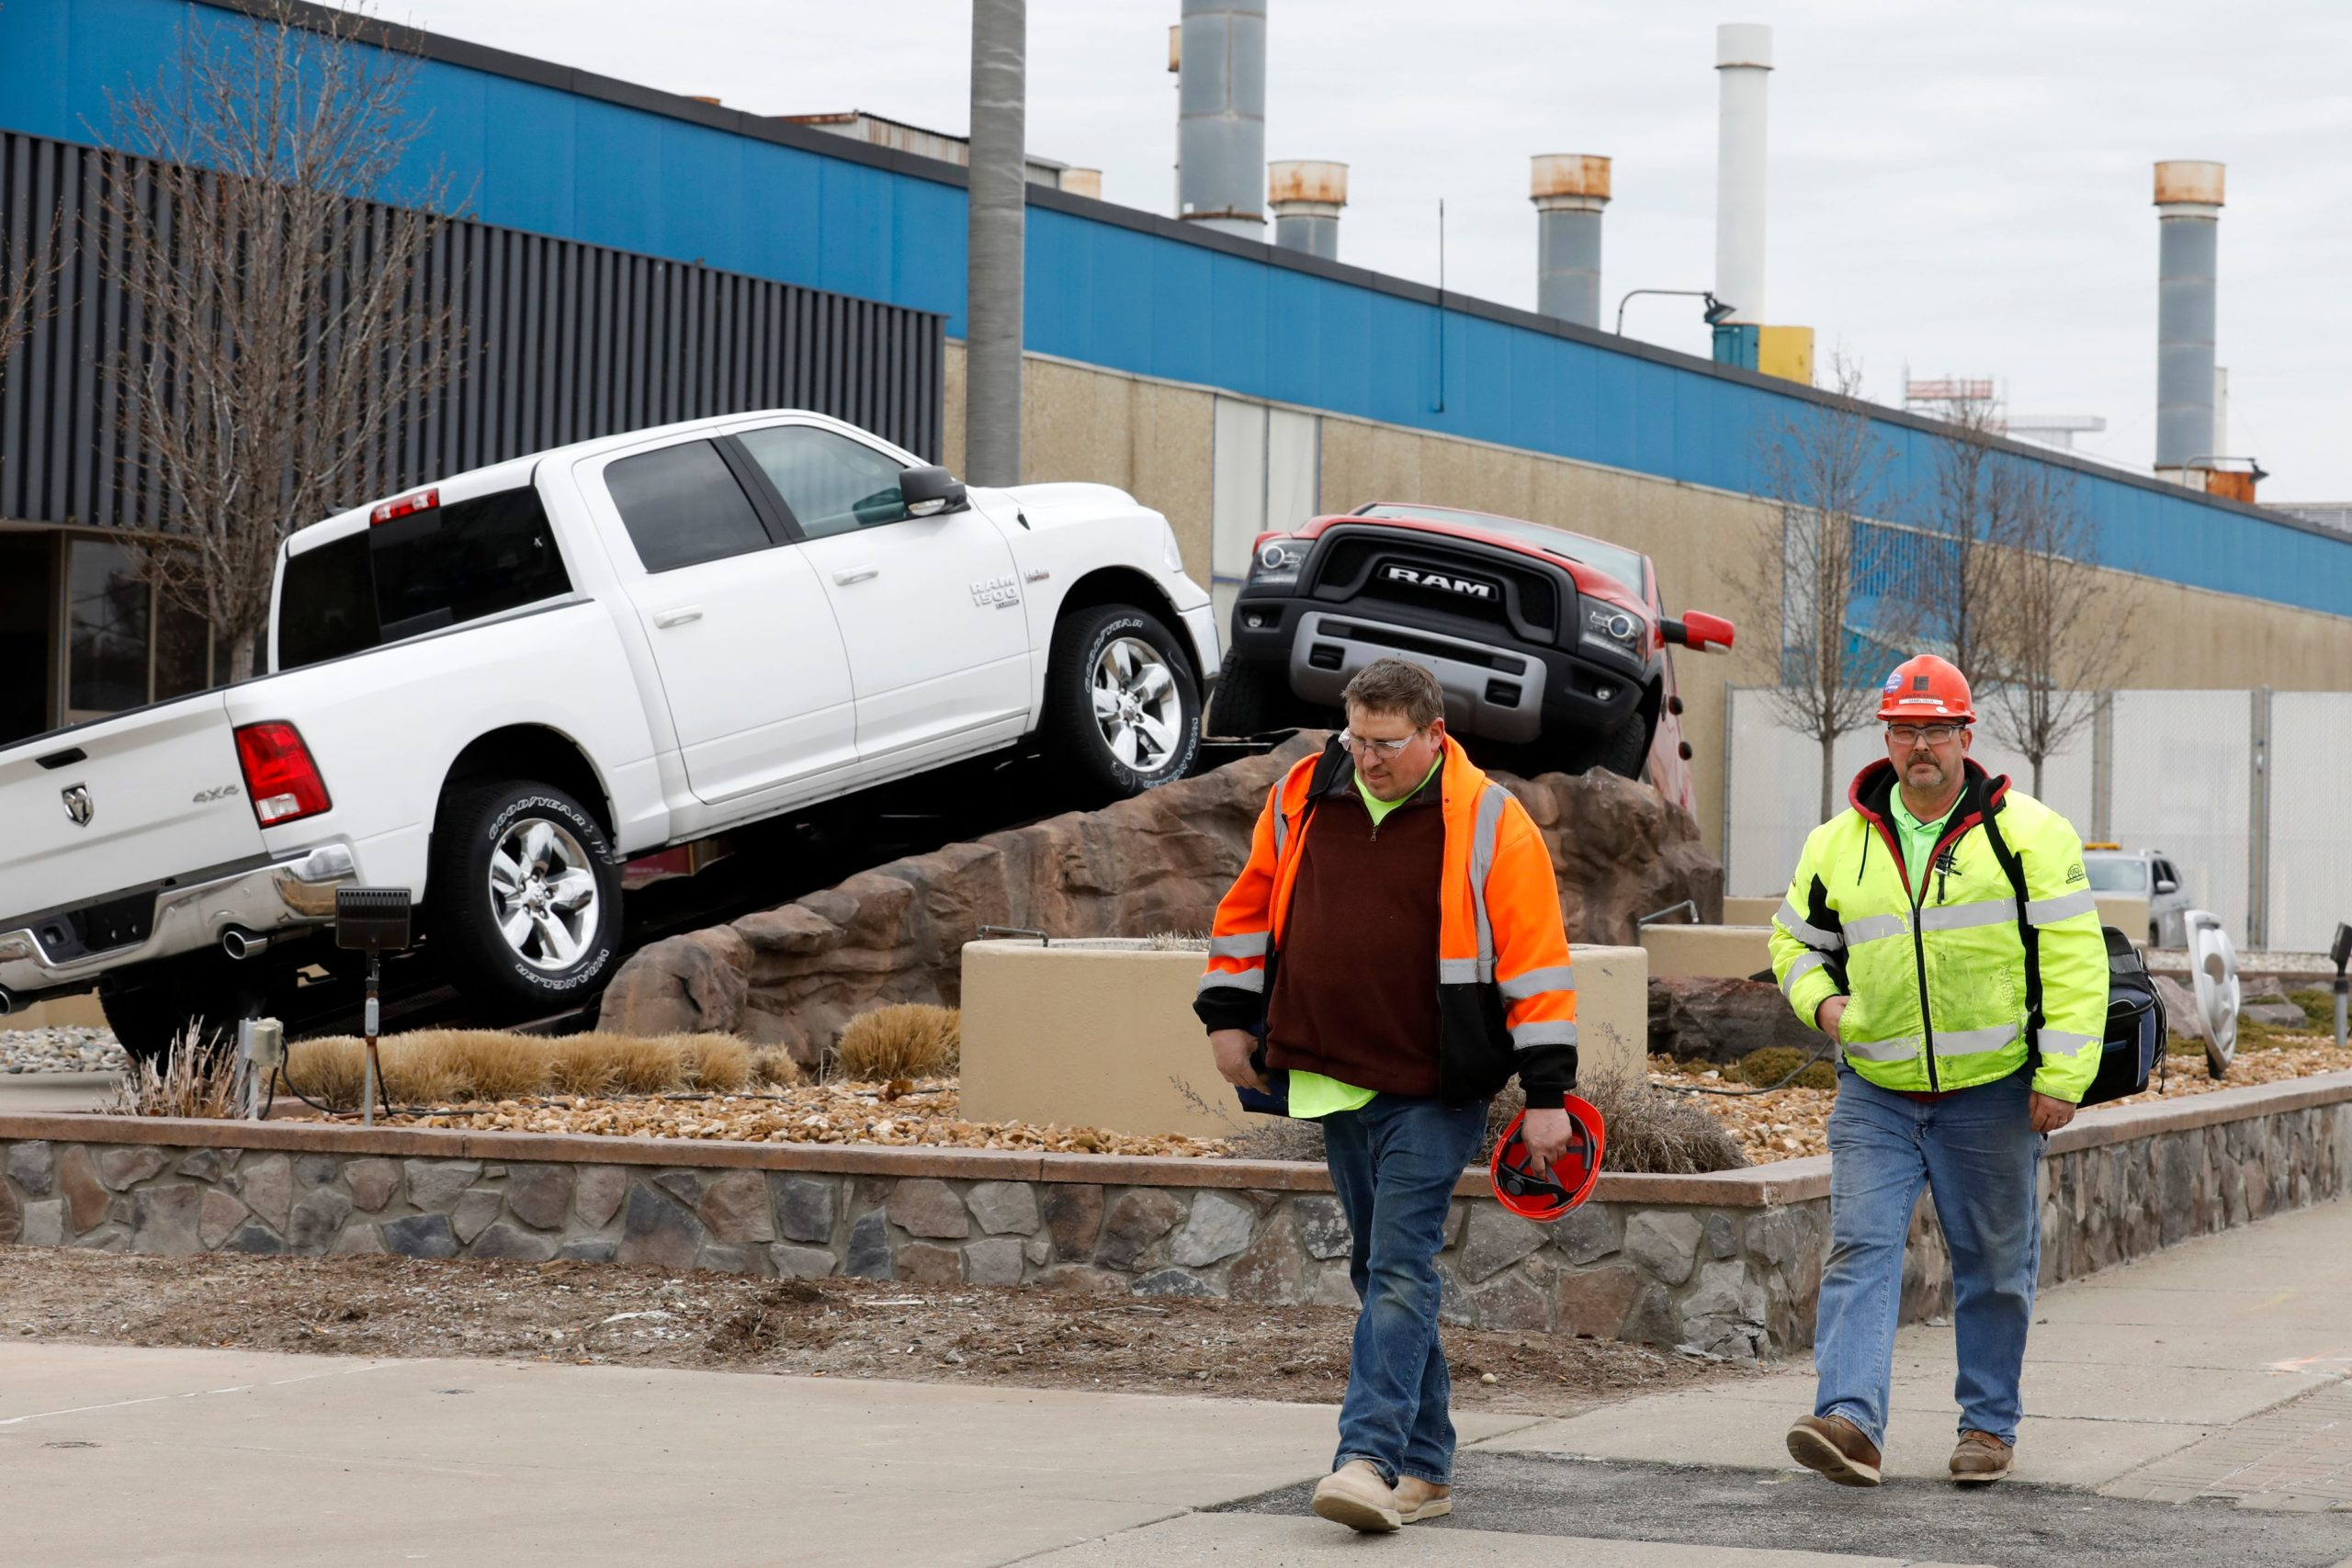 Construction workers leave Chrysler Warren Truck Assembly on March 18, 2020 in Detroit, Michigan. (Jeff Kowalsky/AFP via Getty Images)